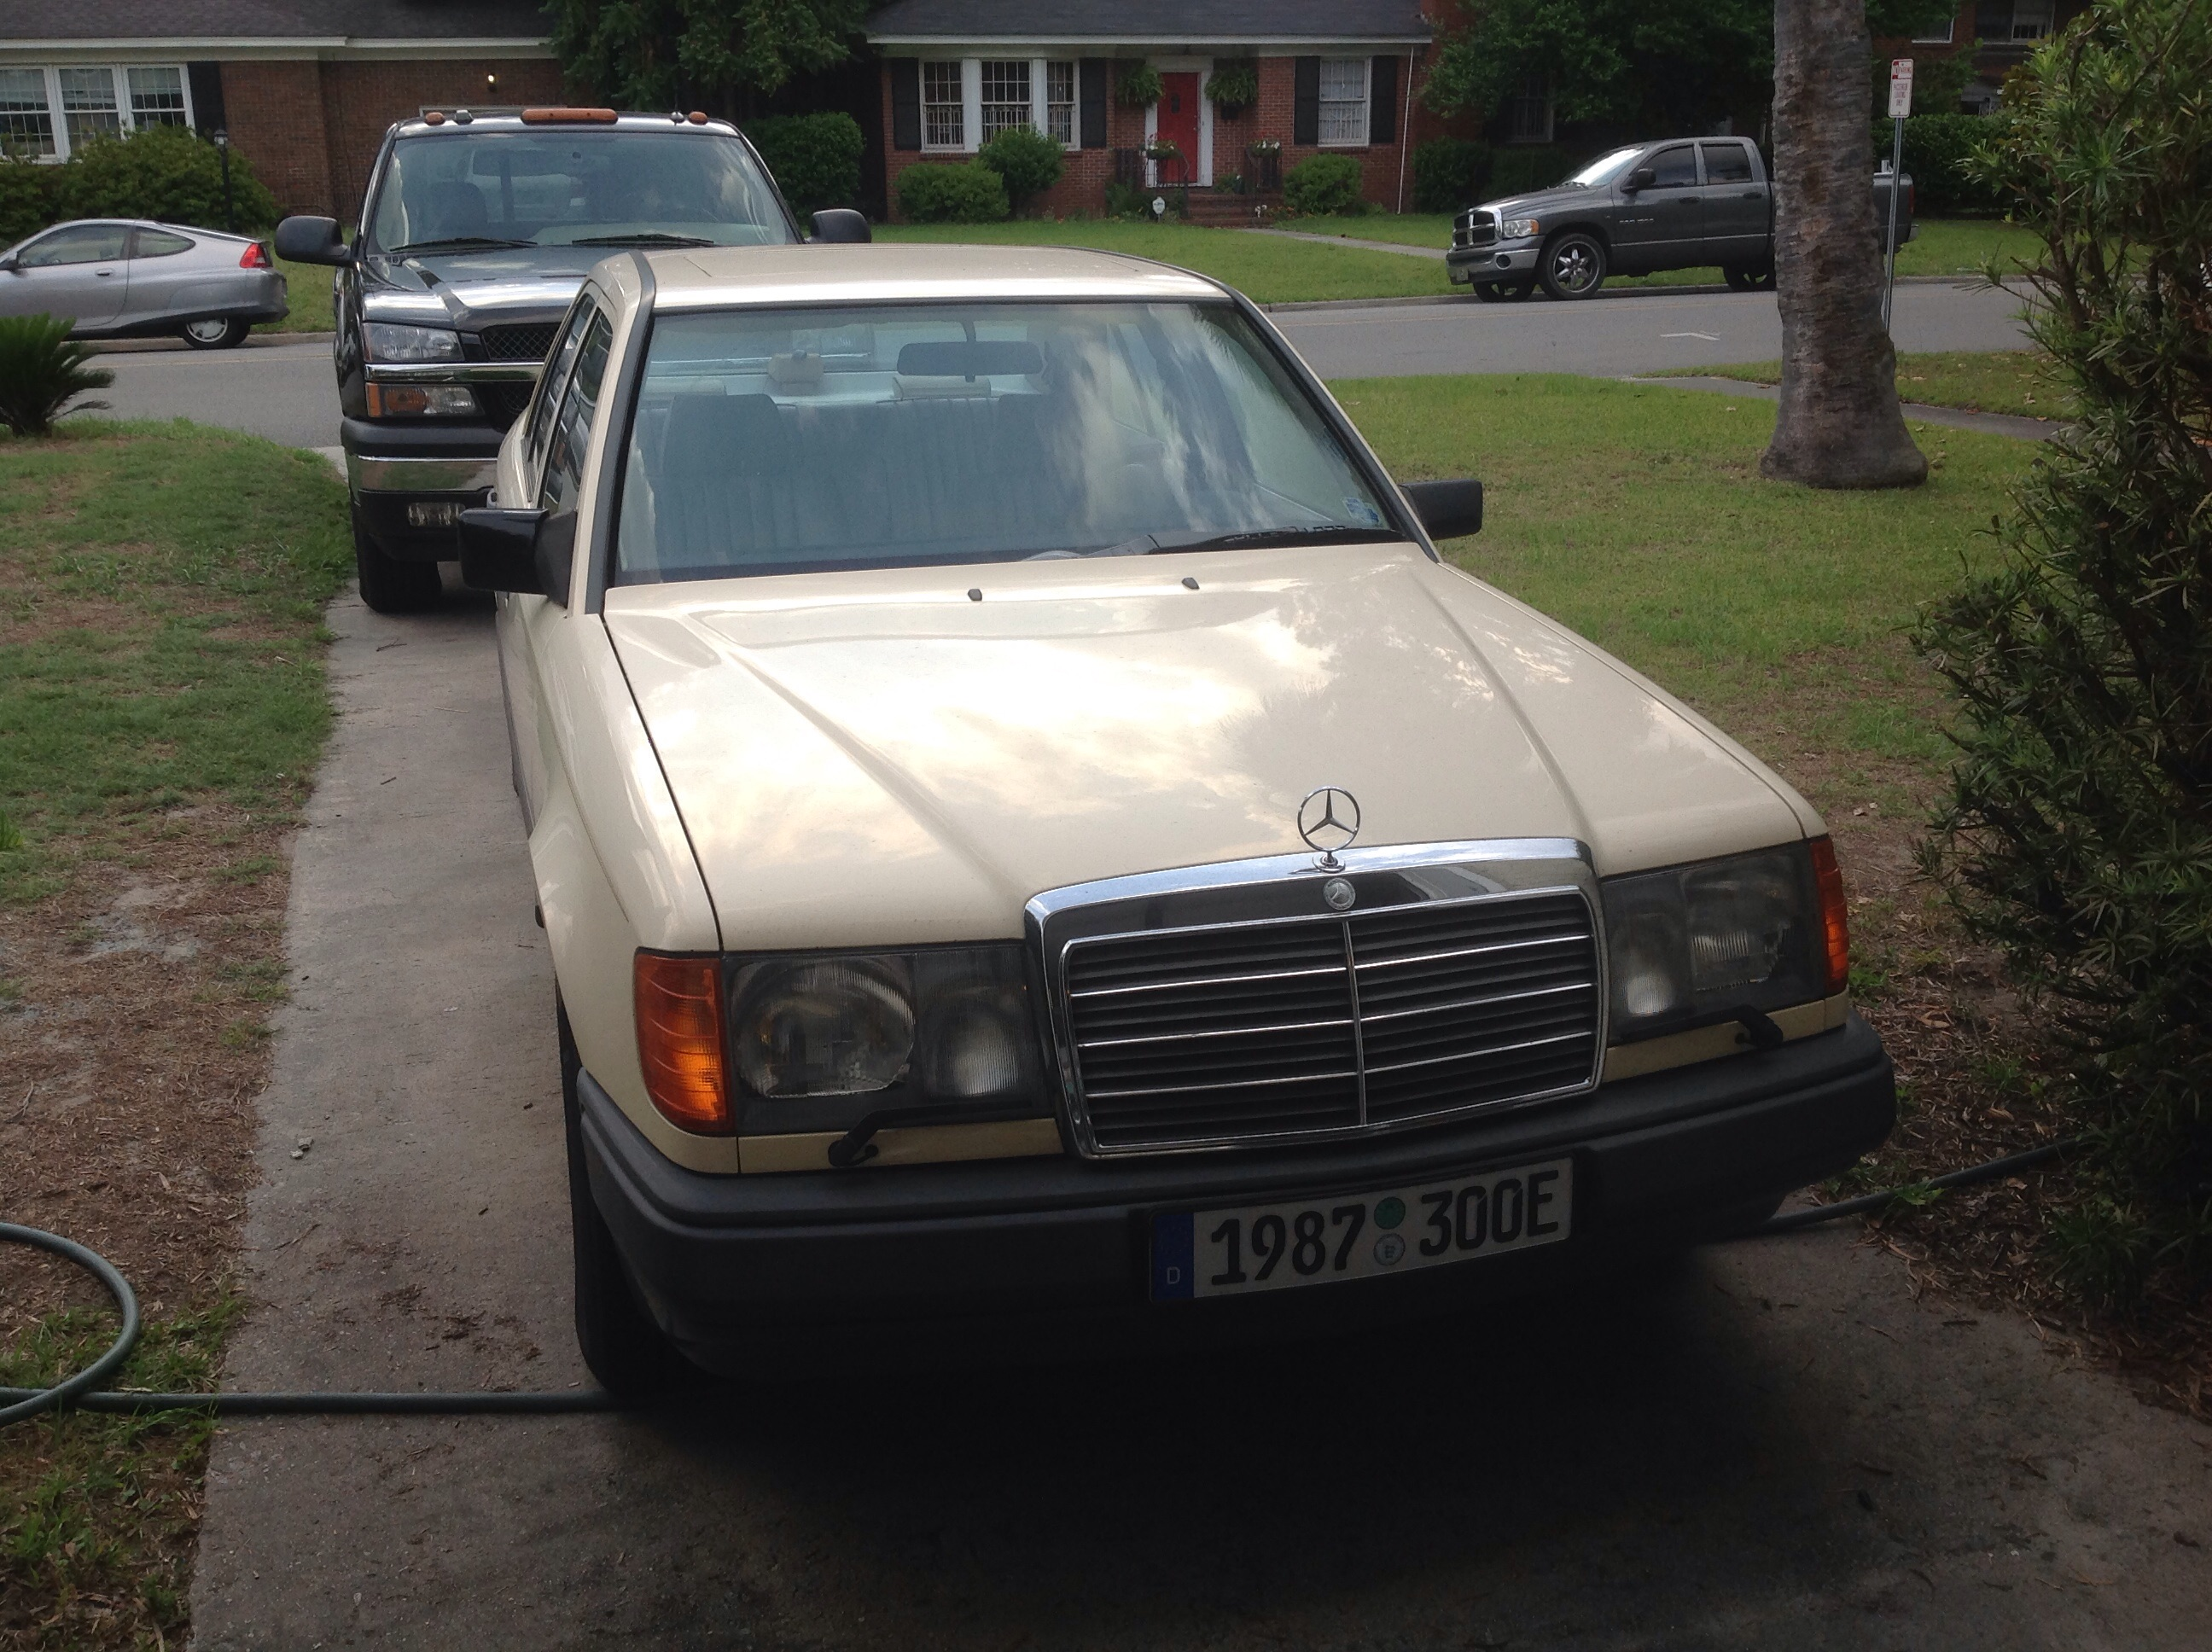 Curbside Capsule Mercedes W124 E Class Das Beste Oder Nicht Wiring Harness Replacement Extremely Satisfying And Fun To Work On If Not They Are Totally Frustrating I Have Had My 1987 Model For Eight Years Still Savor Every Minute